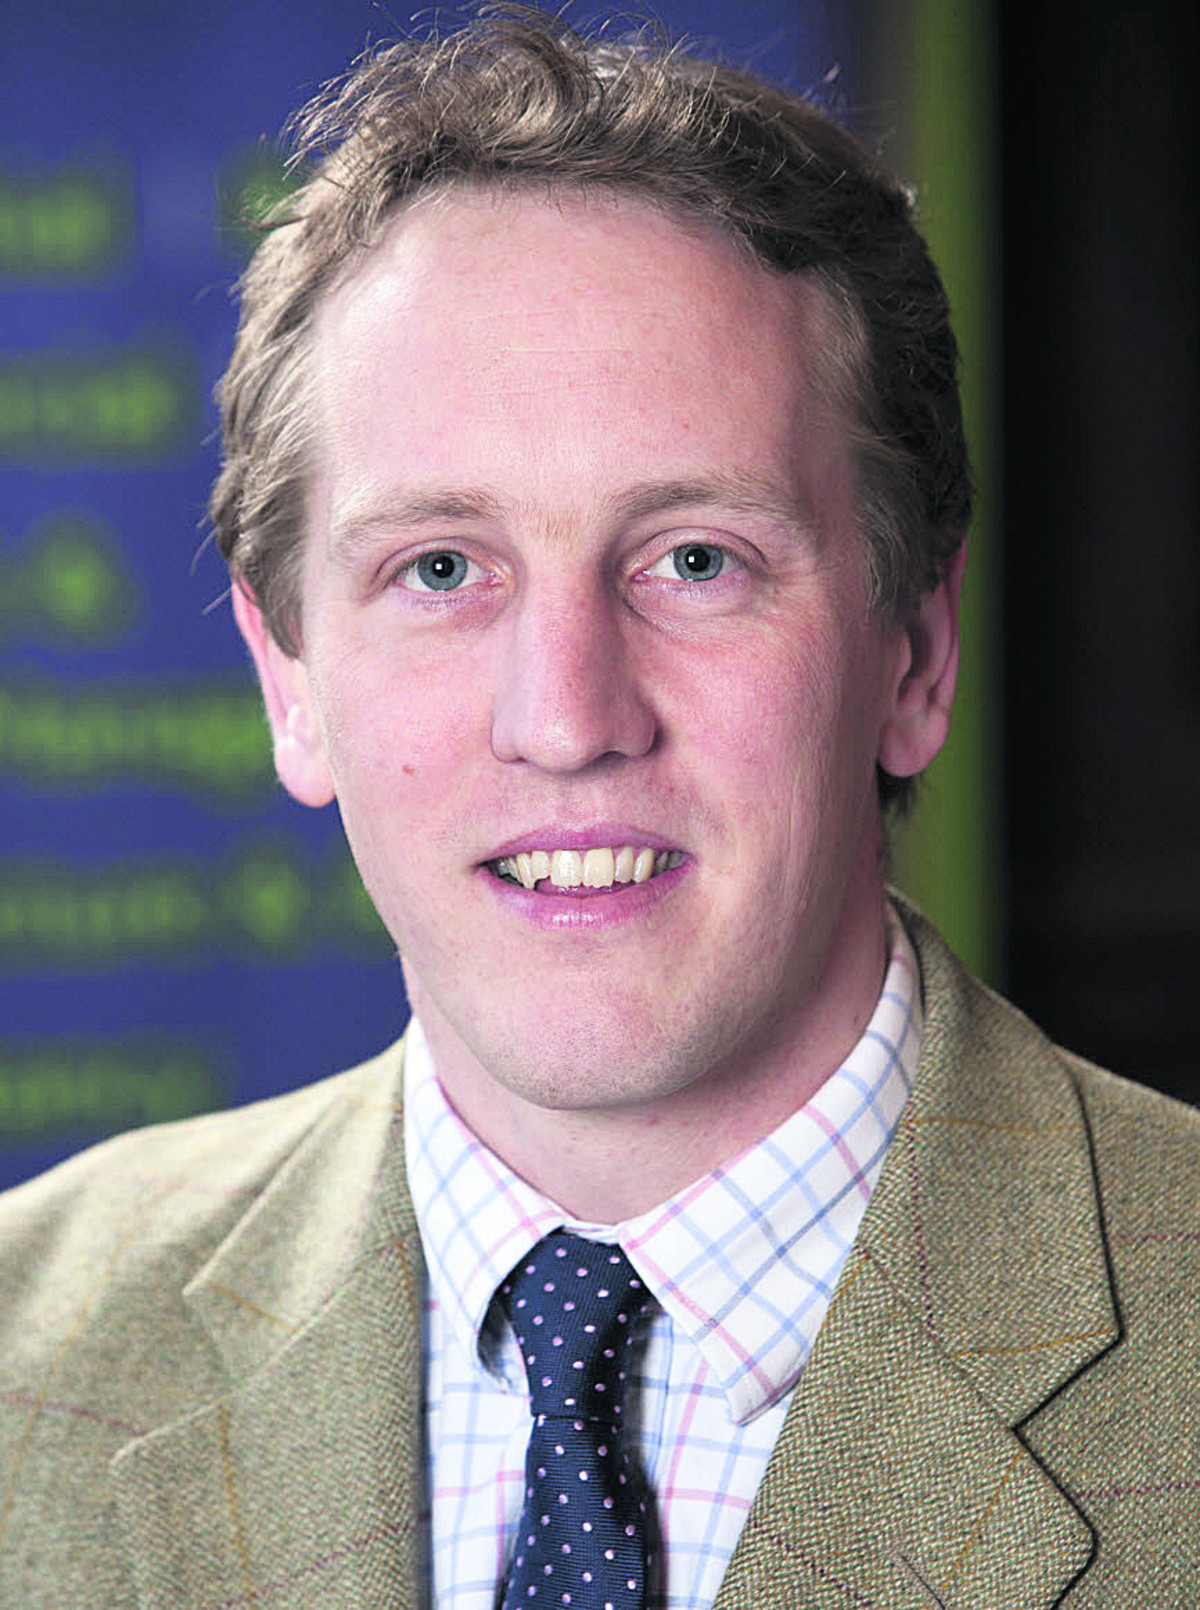 Rural surveyor Ben Myerscough, of Carter